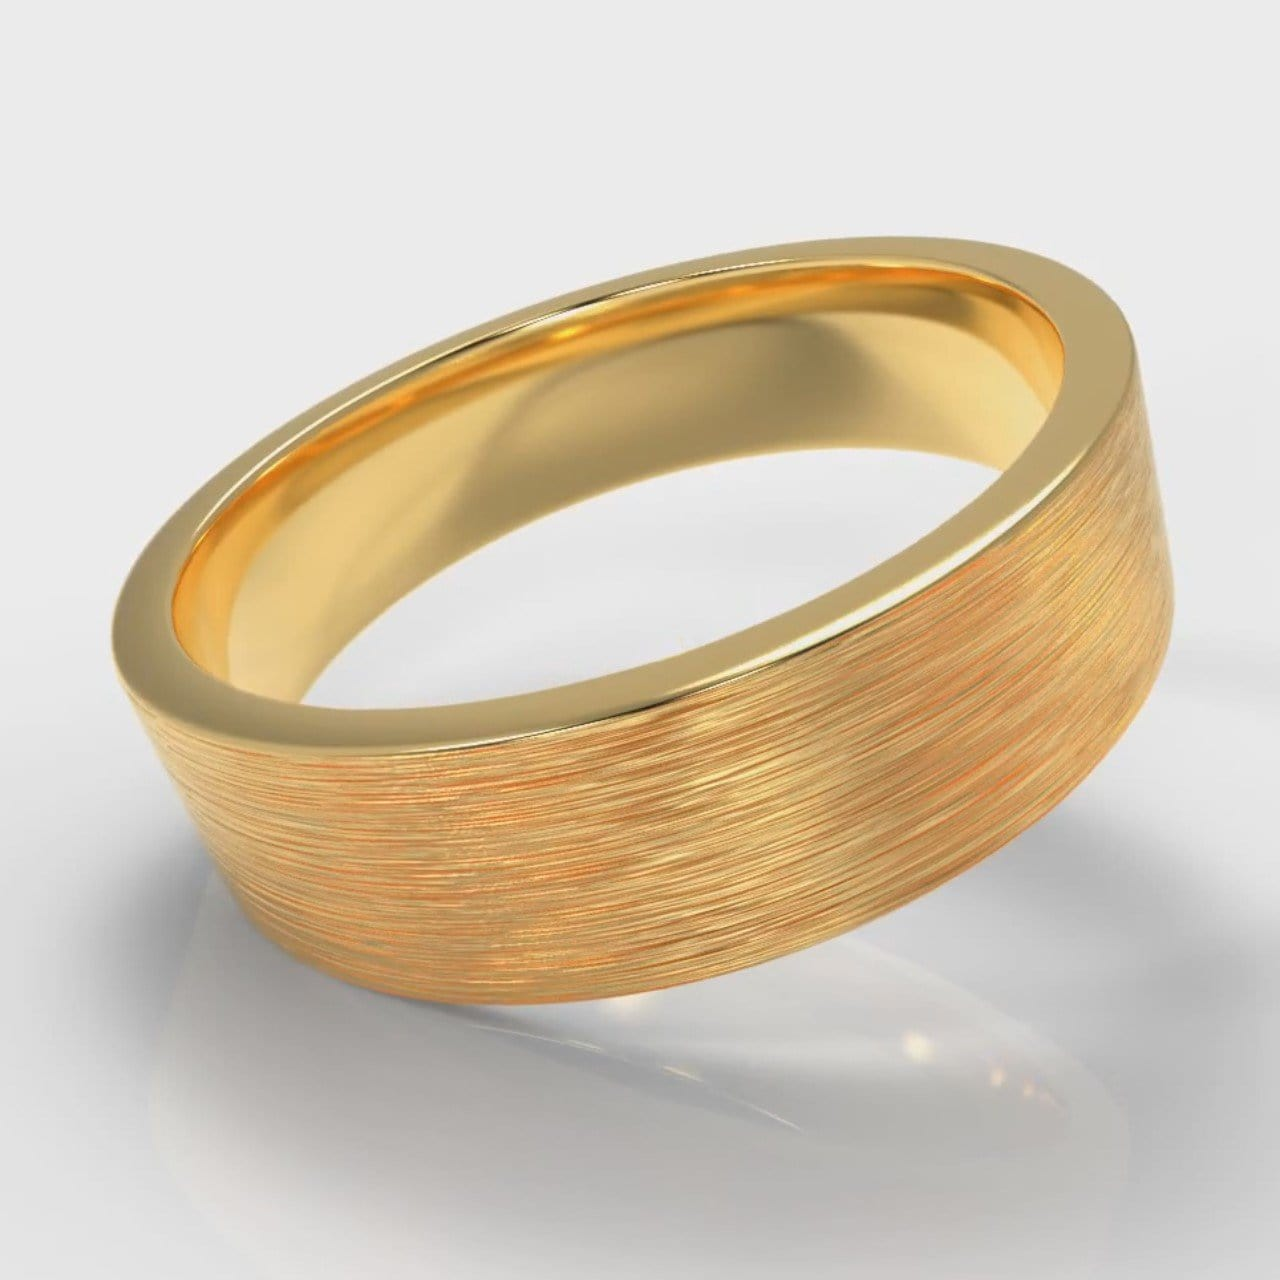 6mm Flat Top Comfort Fit Brushed Wedding Ring - Yellow Gold